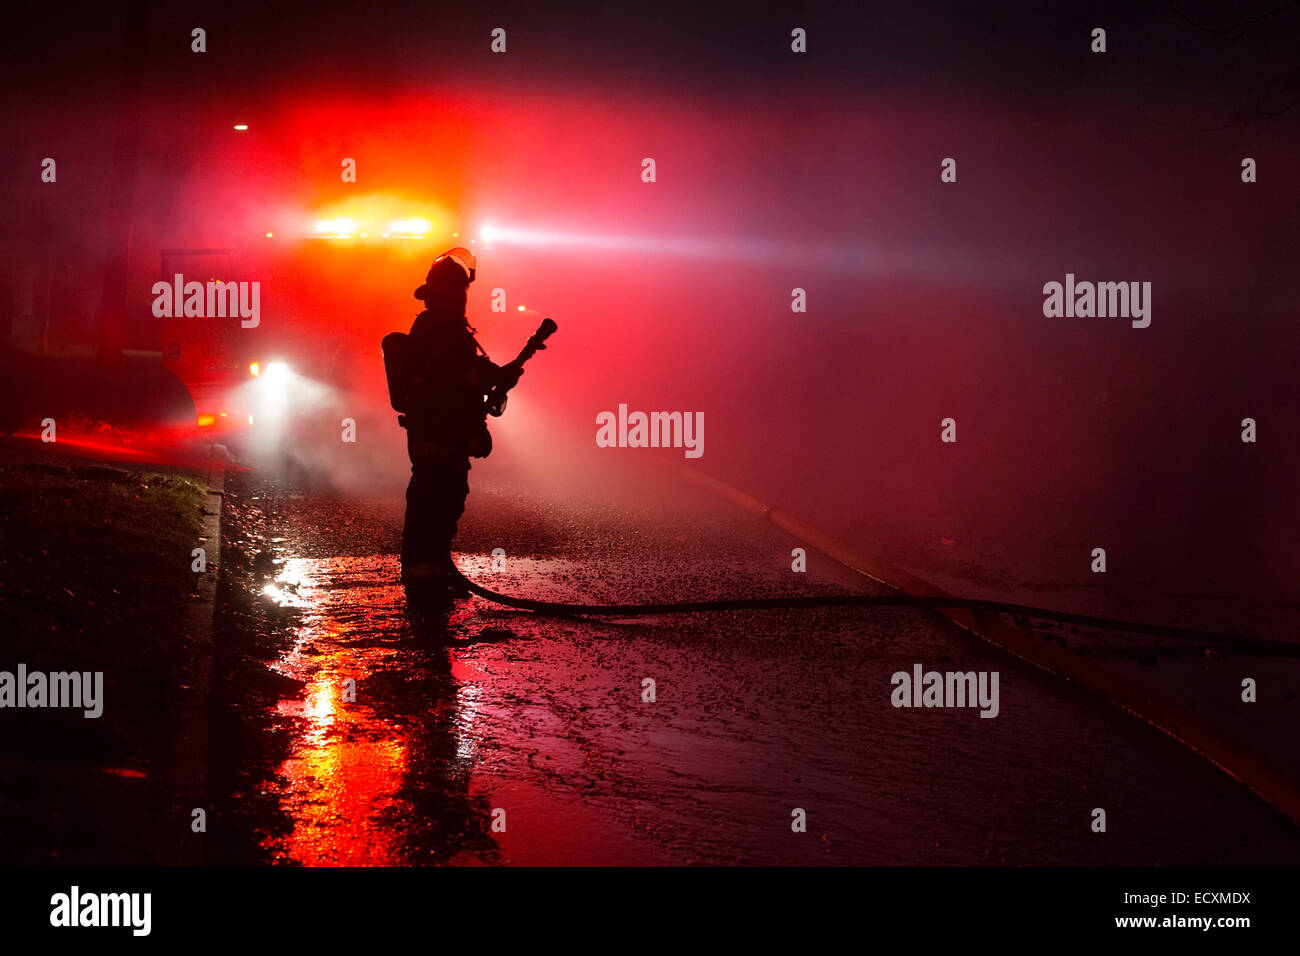 Detroit, Michigan USA - Firefighters battle a fire which destroyed a vacant home in Detroit's Morningside neighborhood. Stock Photo